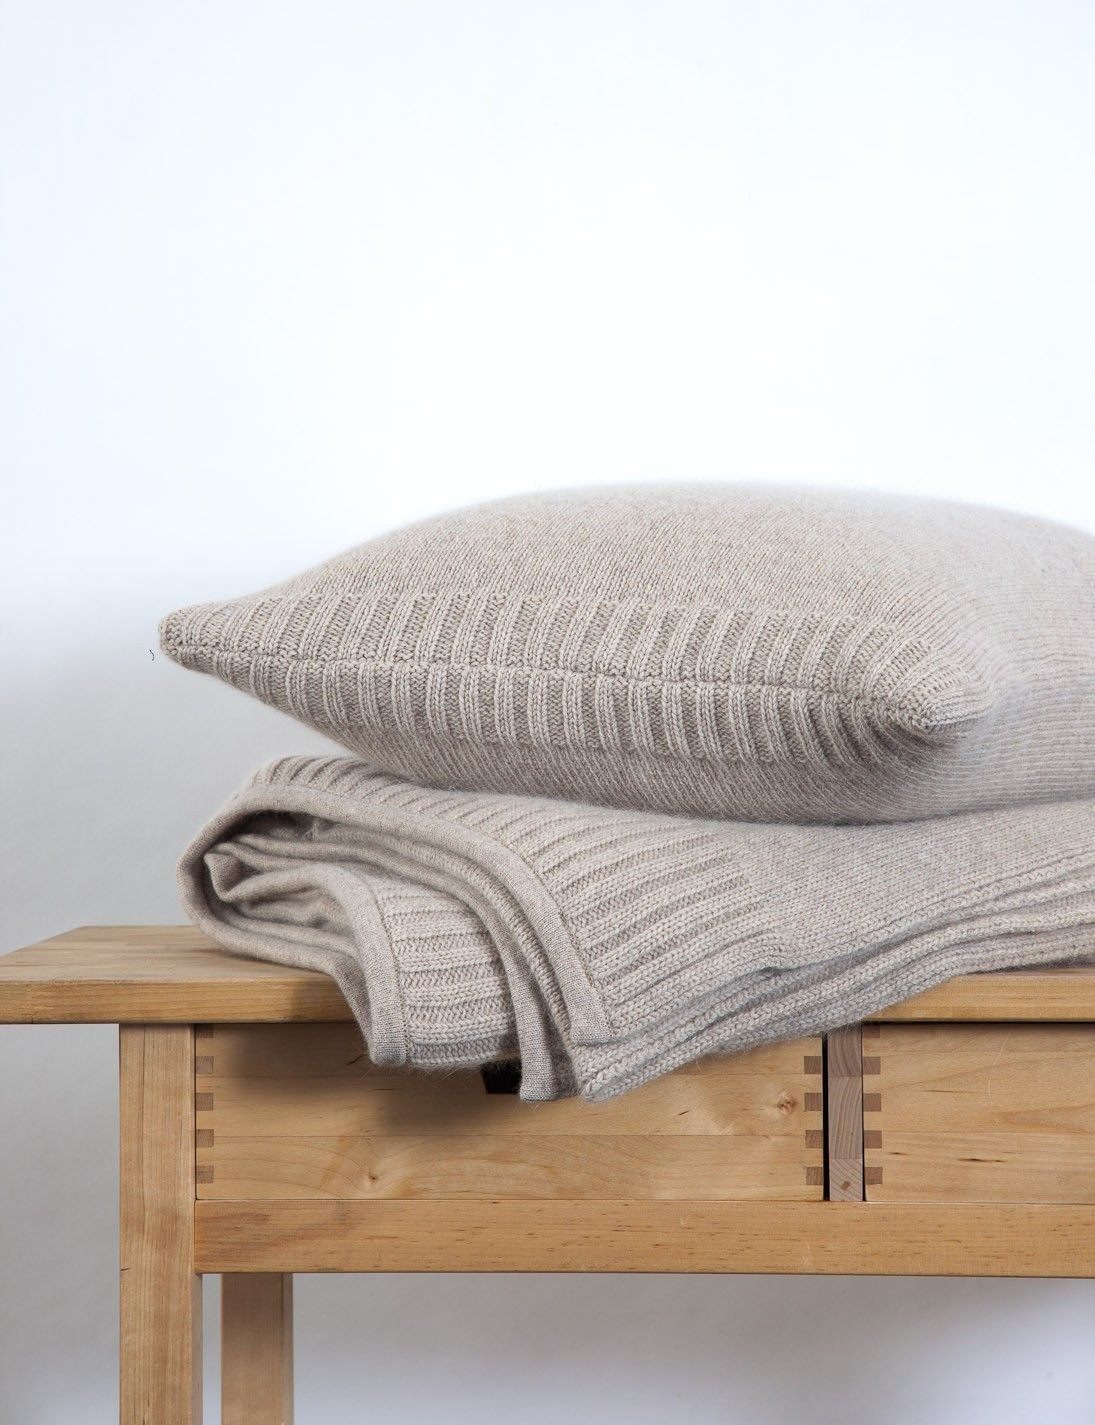 Abode Living - Blankets and Throws - Madden Knitted Merino Angora Blanket and Throw - Abode Living